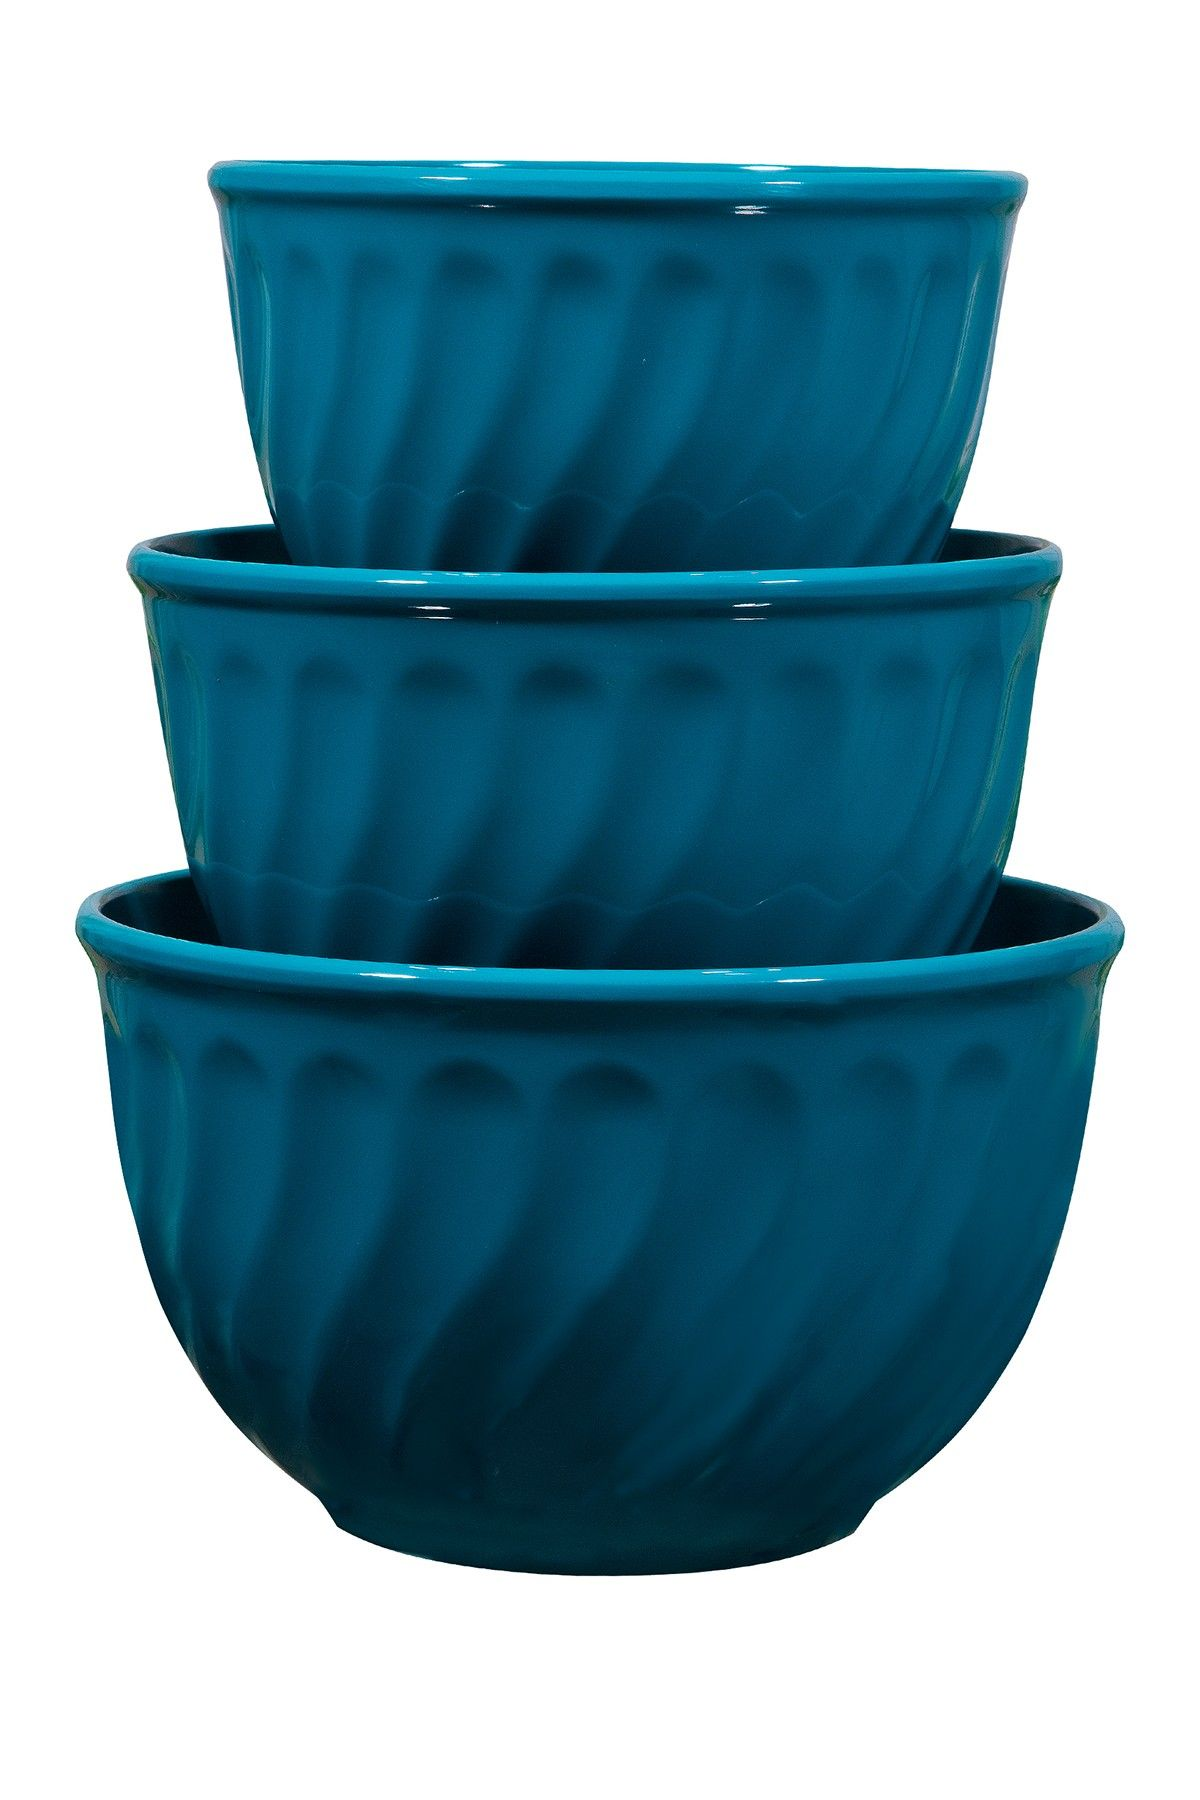 59f237bc130a5a89df1c12c25b7996f4 - Better Homes And Gardens Wavy Bowls